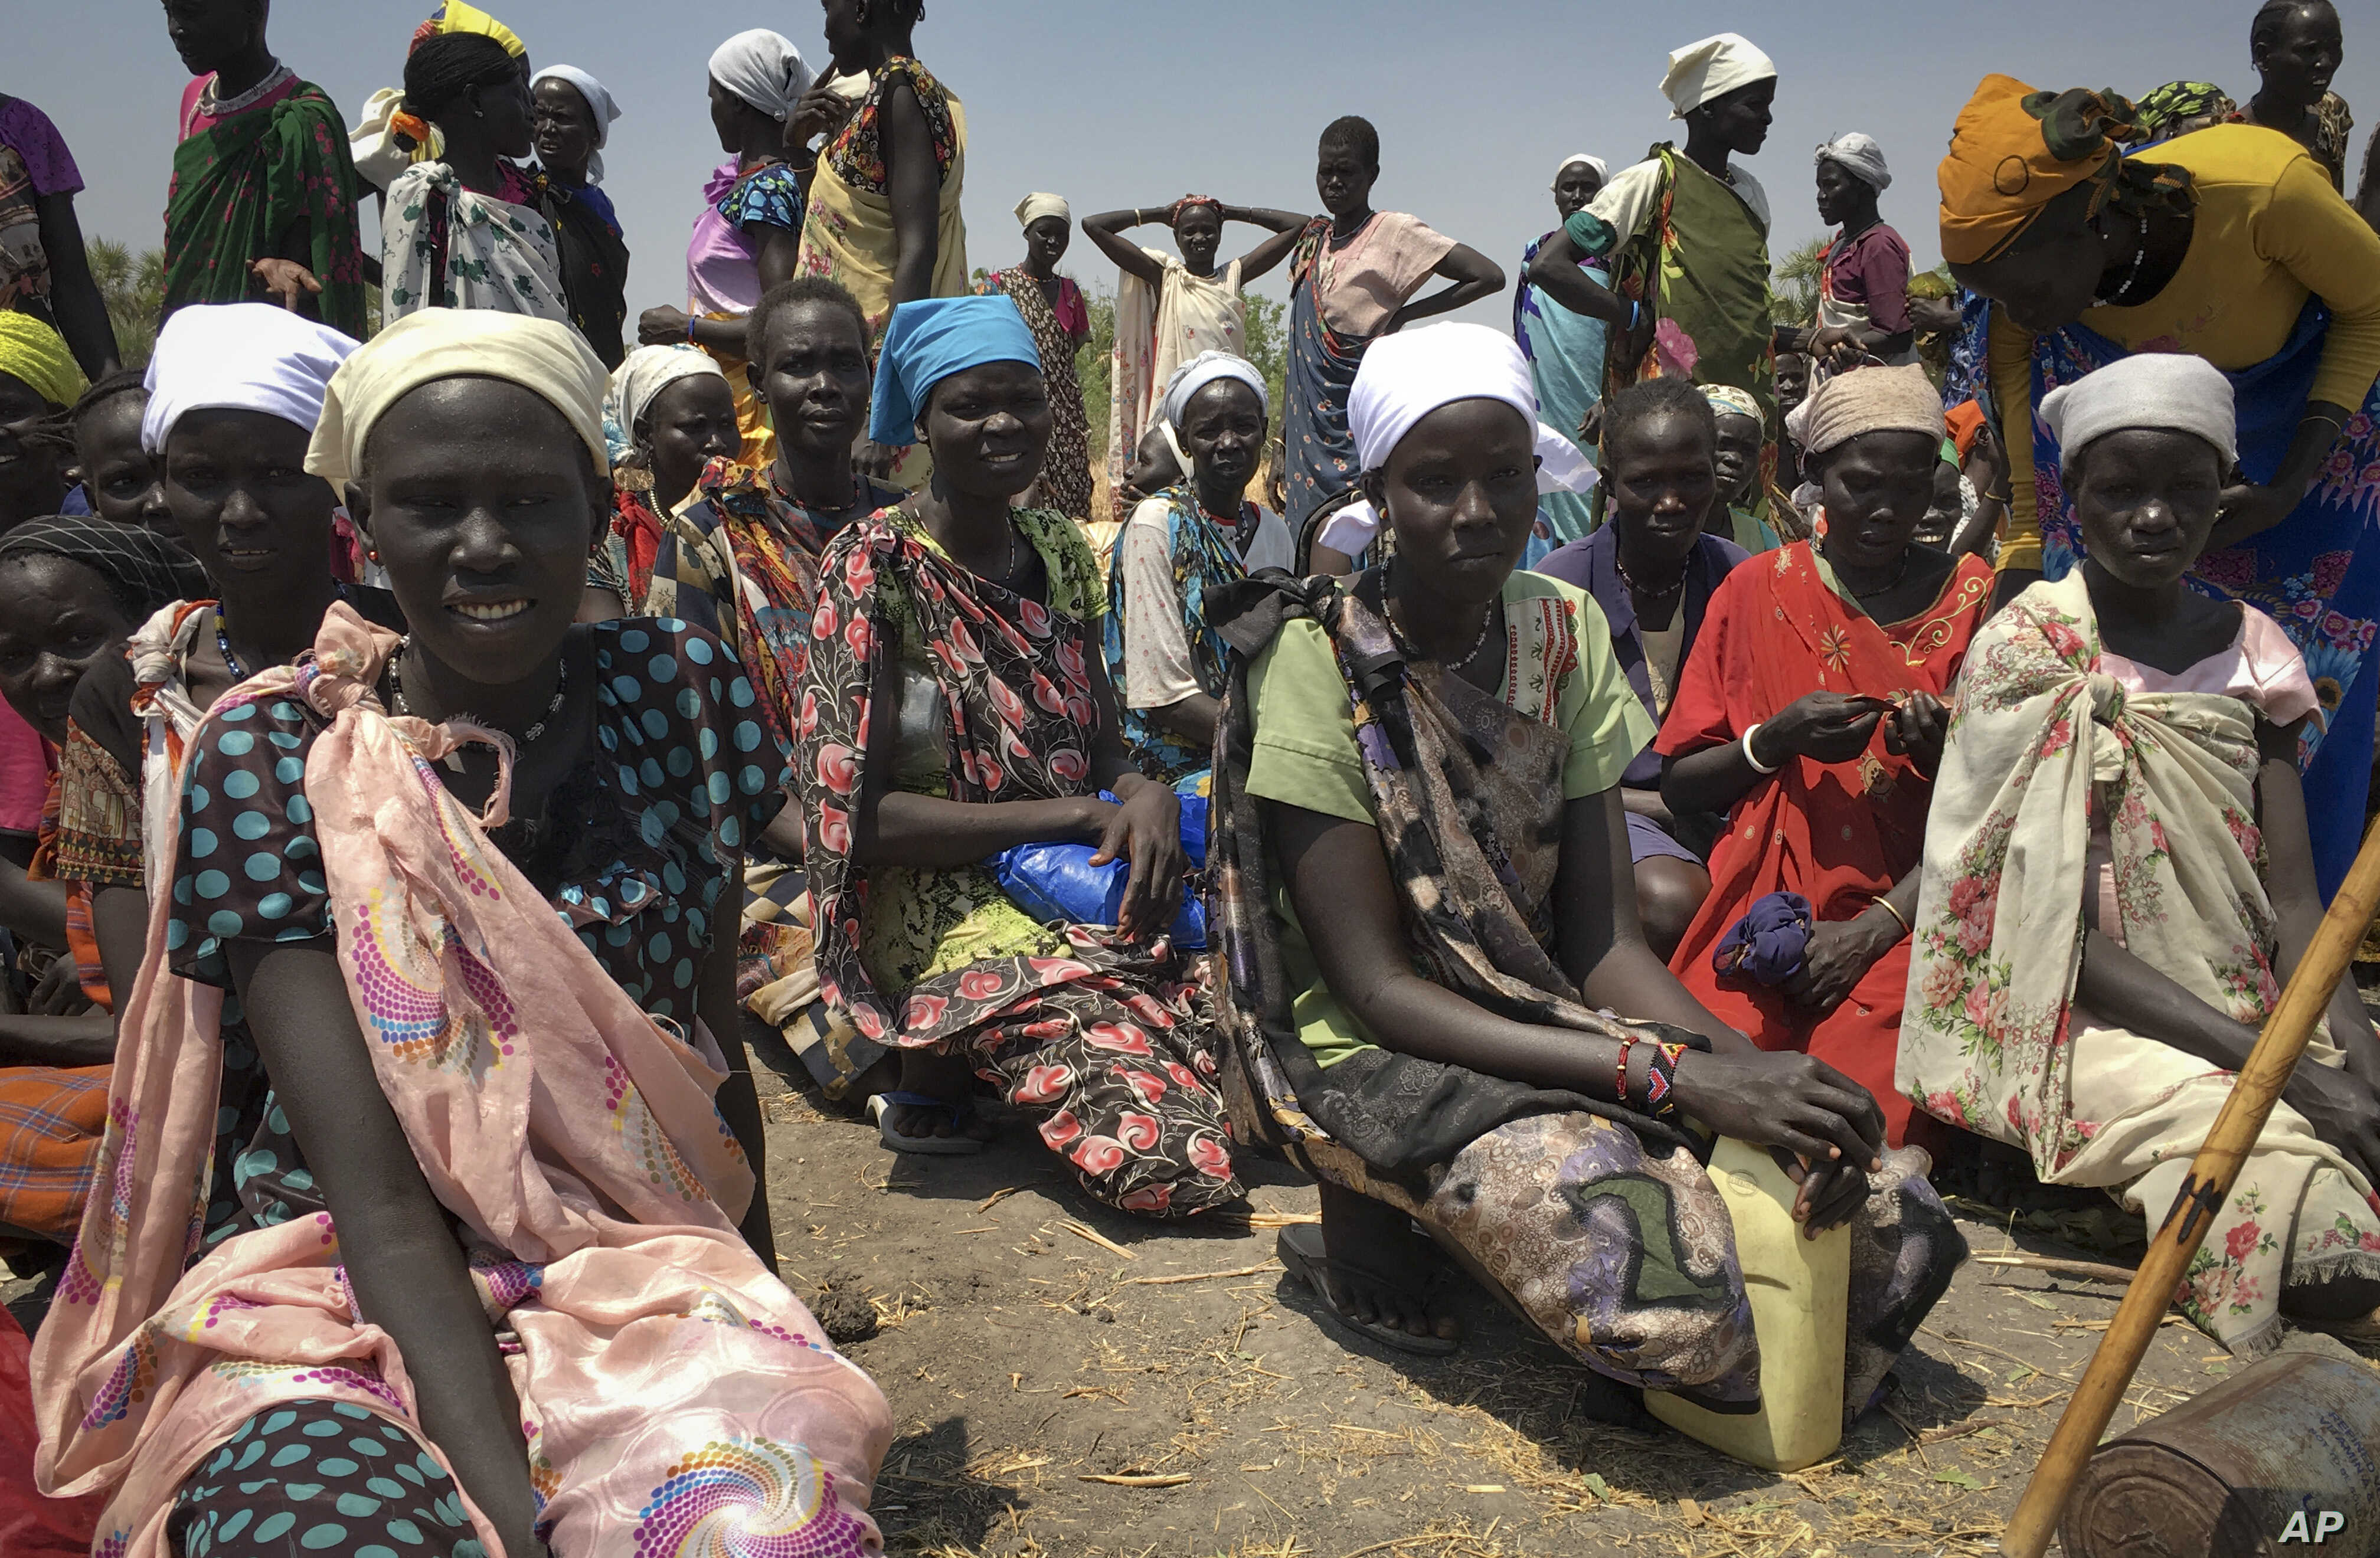 FILE - women sit in line on the ground waiting to receive food distributed by the World Food Program (WFP) in Padeah, South Sudan.